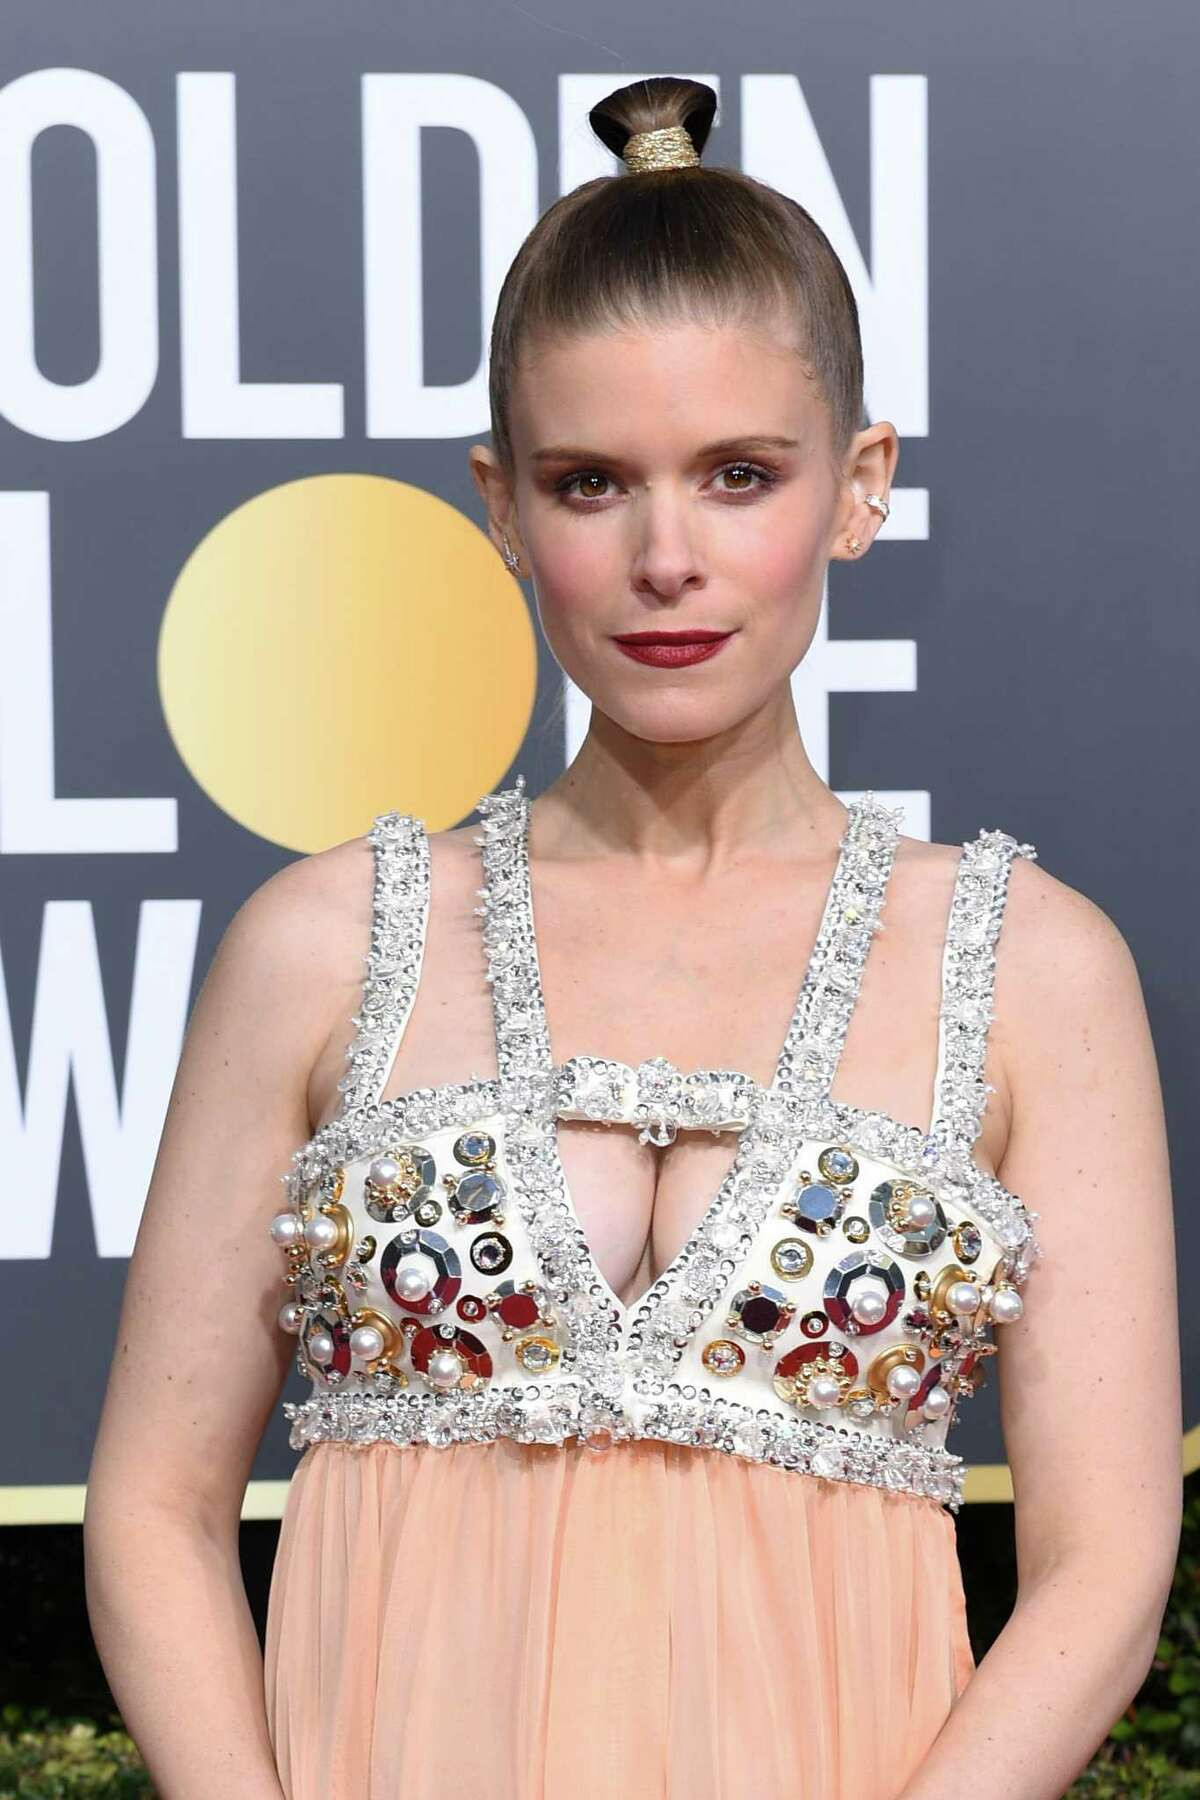 US actress Kate Mara arrives for the 76th annual Golden Globe Awards on January 6, 2019, at the Beverly Hilton hotel in Beverly Hills, California. (Photo by VALERIE MACON / AFP)VALERIE MACON/AFP/Getty Images